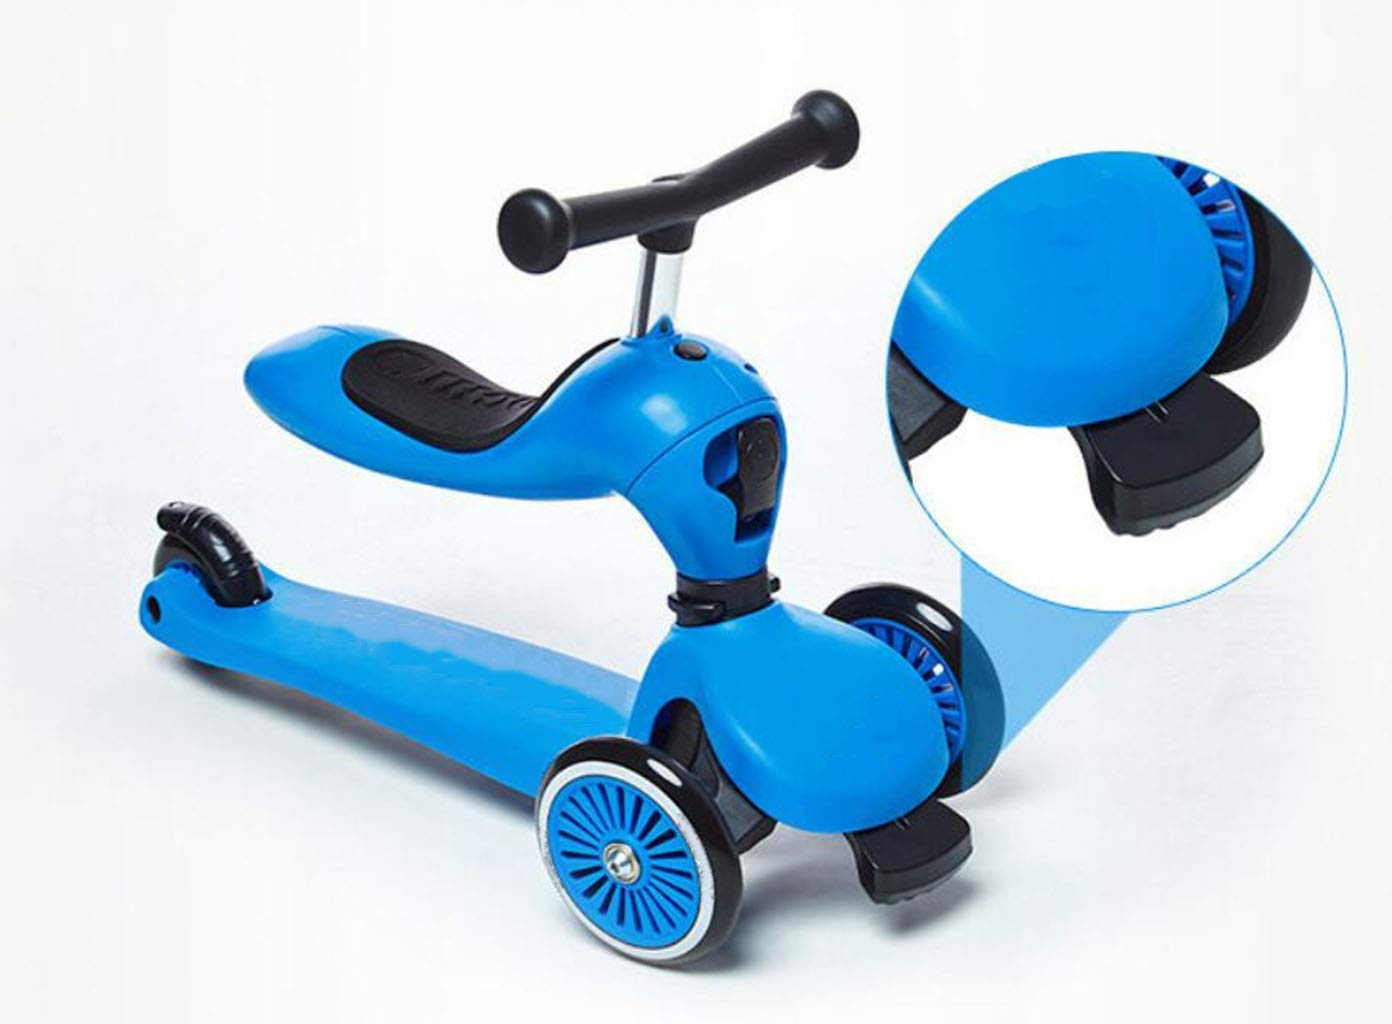 Children's scooter kick scooter children's children 4 wheel scooter, 2 in 1 super wide wheel kids scooter balance car / slide car, one button conversion adjustable height handle, scooter children boys by JBHURF (Image #2)